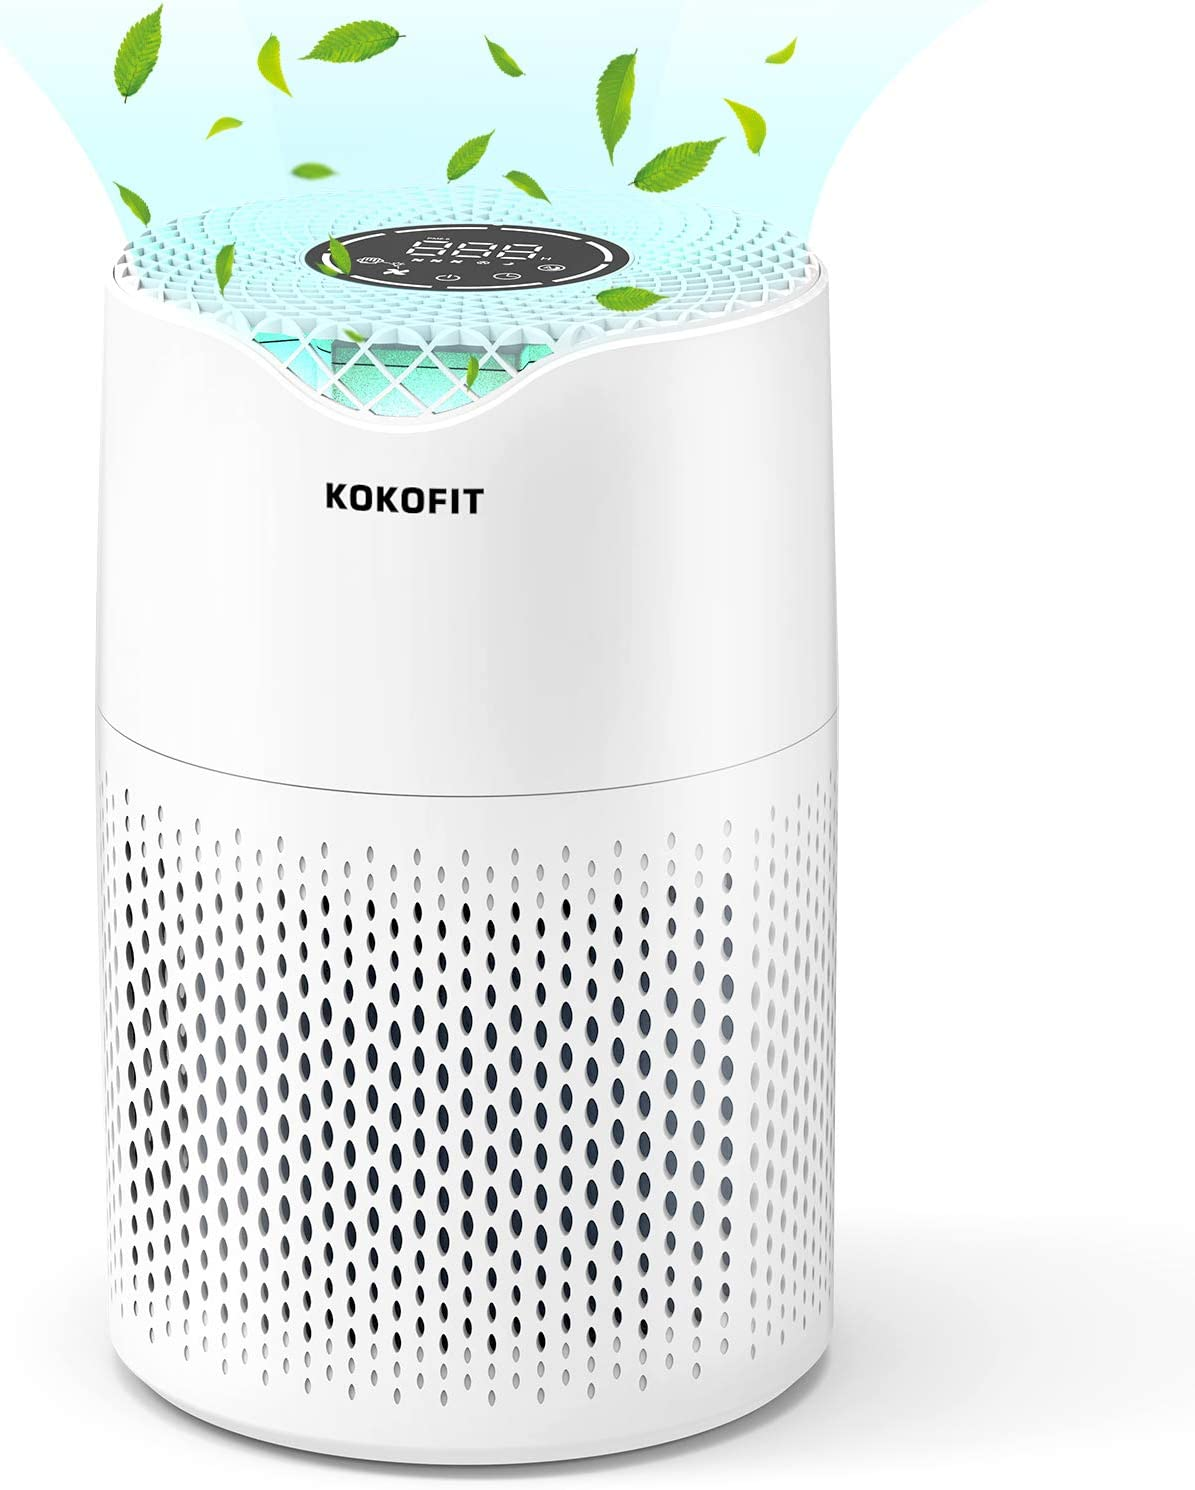 KOKOFIT Small Portable Air Purifiers for Home Large Room with True HEPA Filter Air Purifier for Allergies and Pets, Smokers, Mold, Pollen, Dust, Quiet Odor Up to 161 Sq (CADR 150)